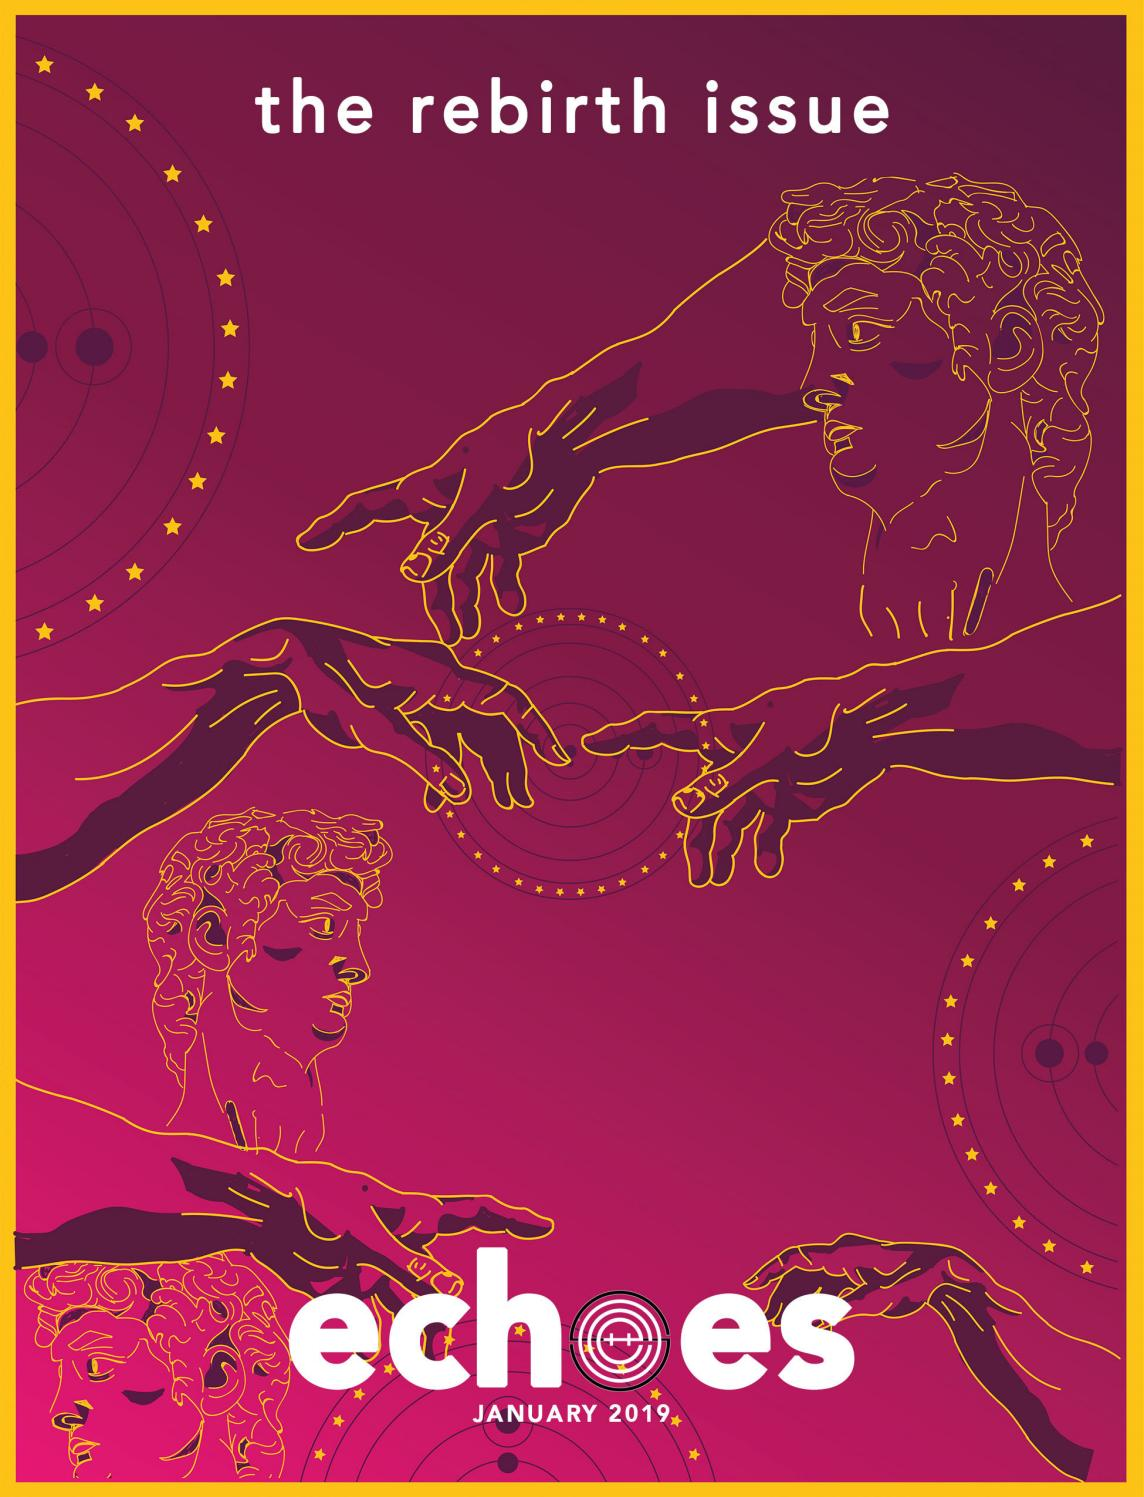 Echoes January 2019 by Echoes - issuu